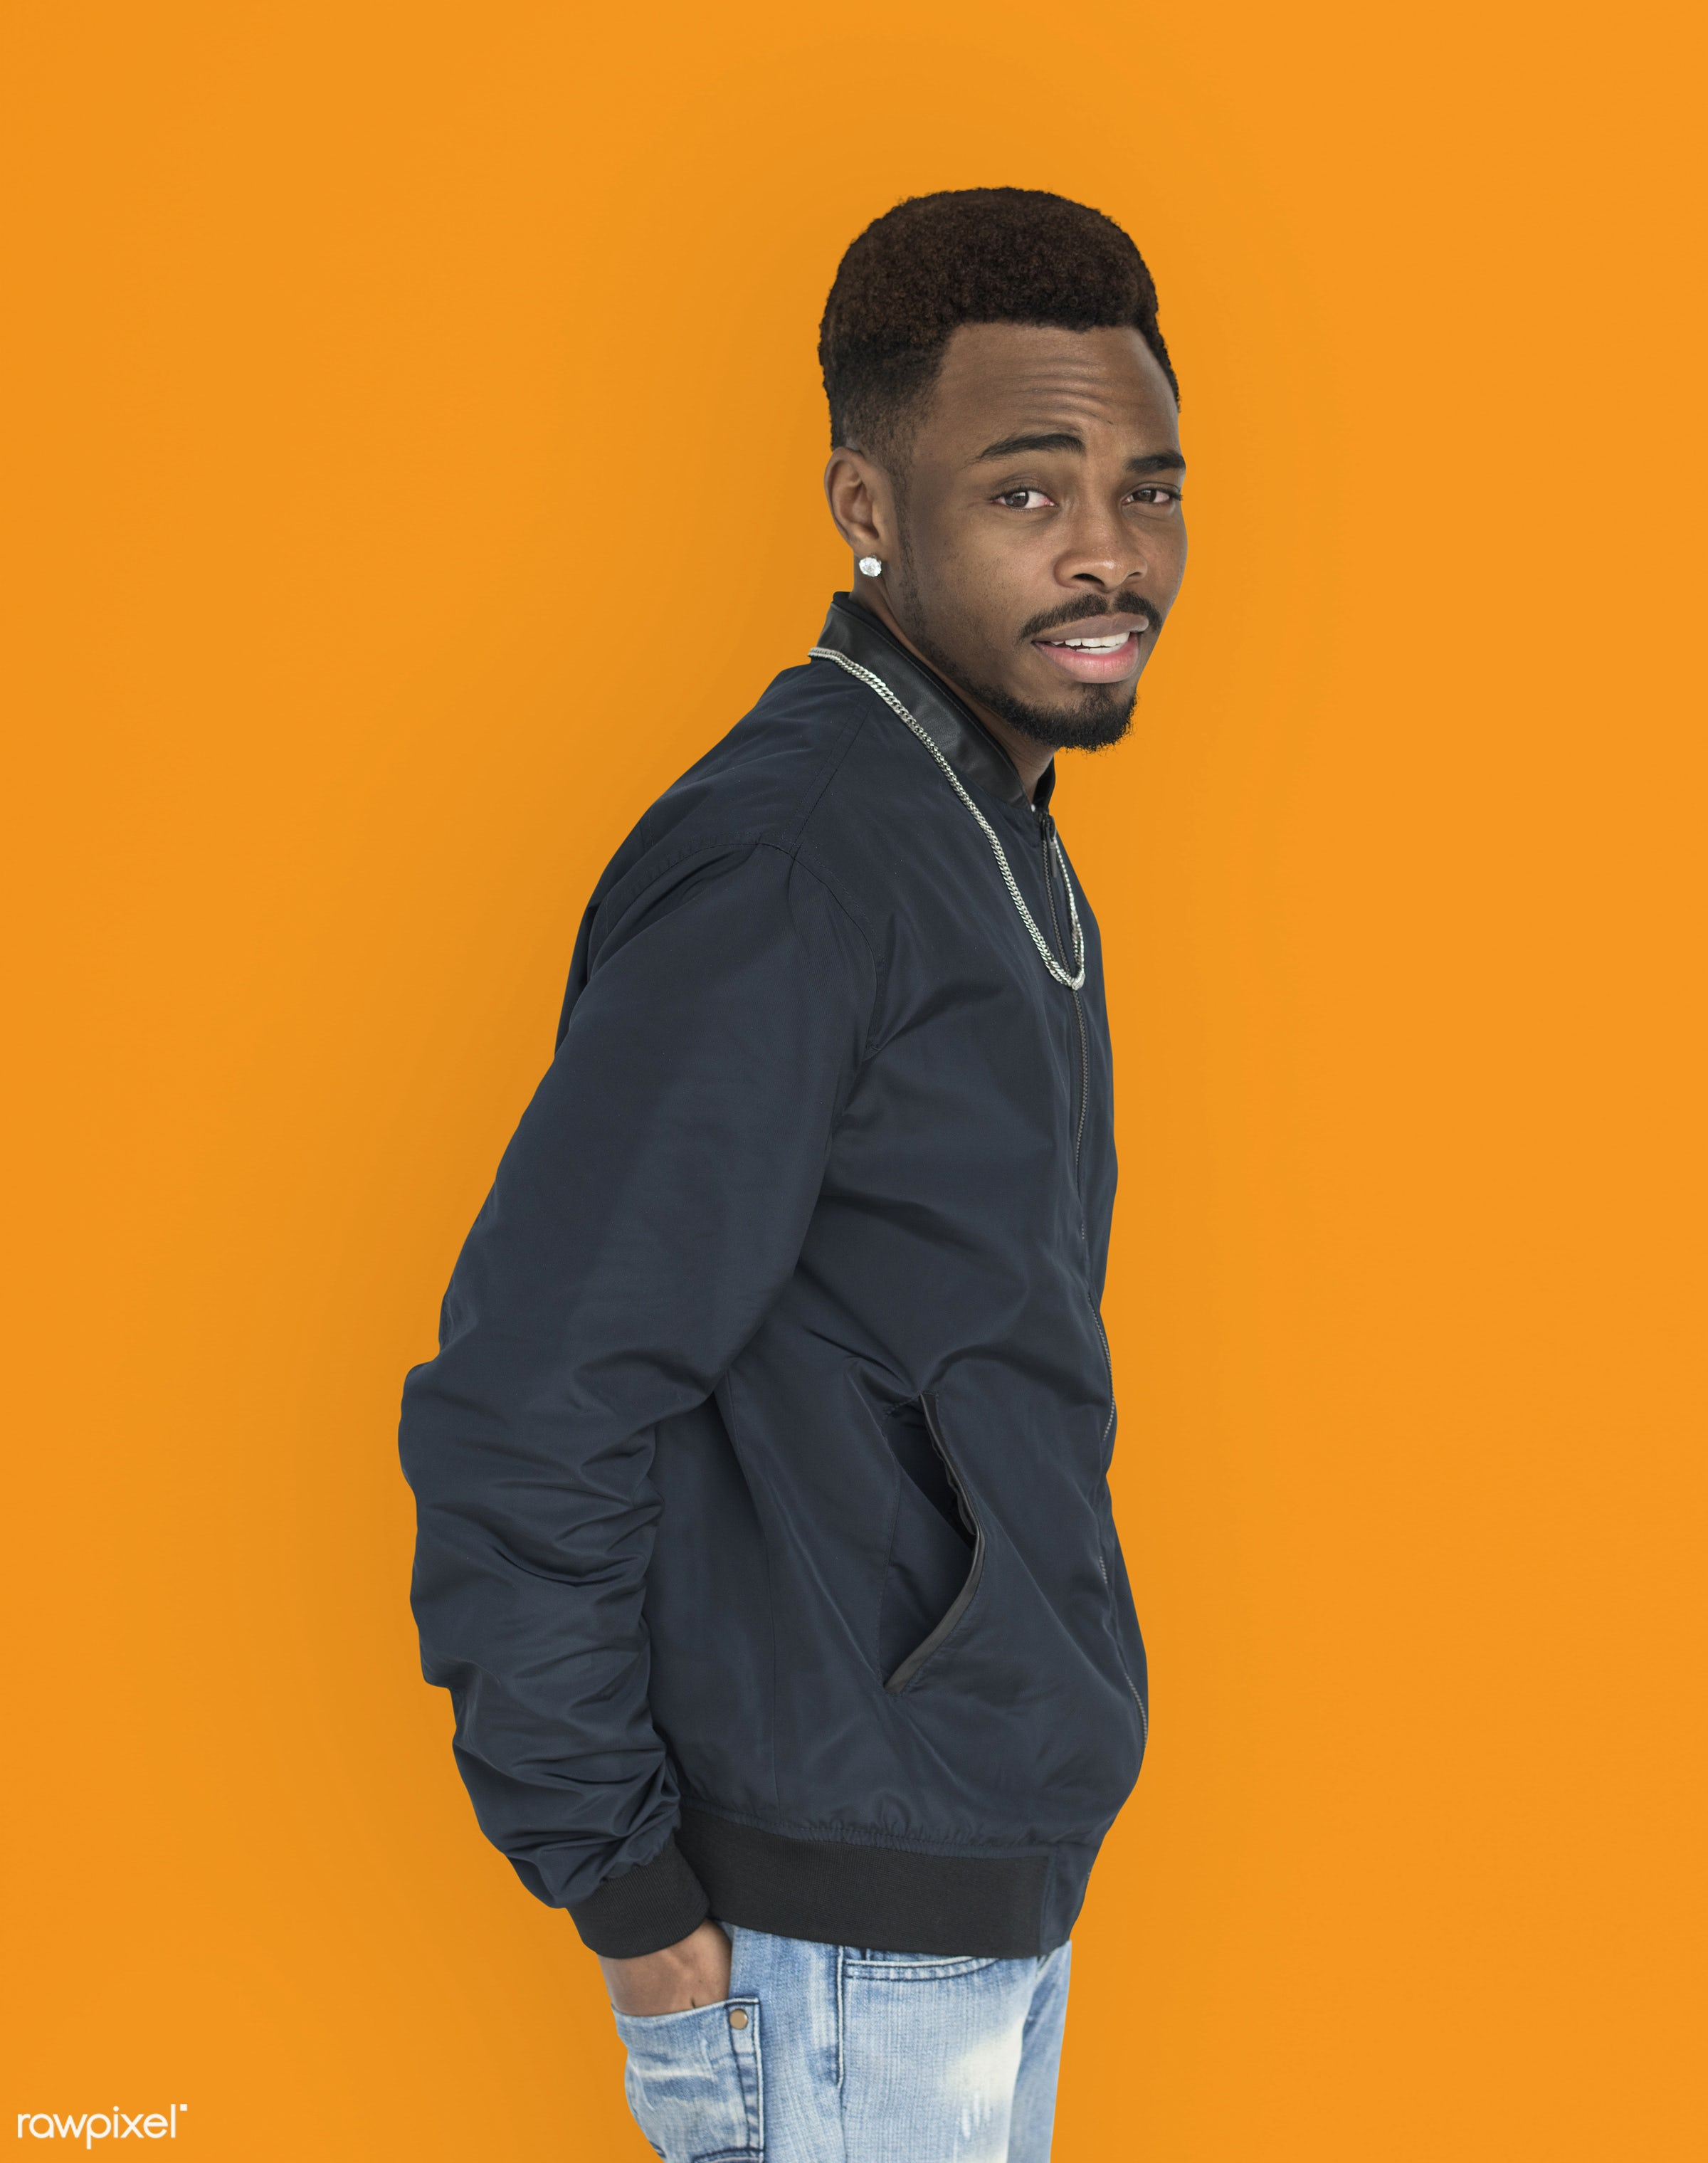 studio, model, person, african, people, race, style, solo, casual, lifestyle, man, isolated, guy, male, gesture, descent,...